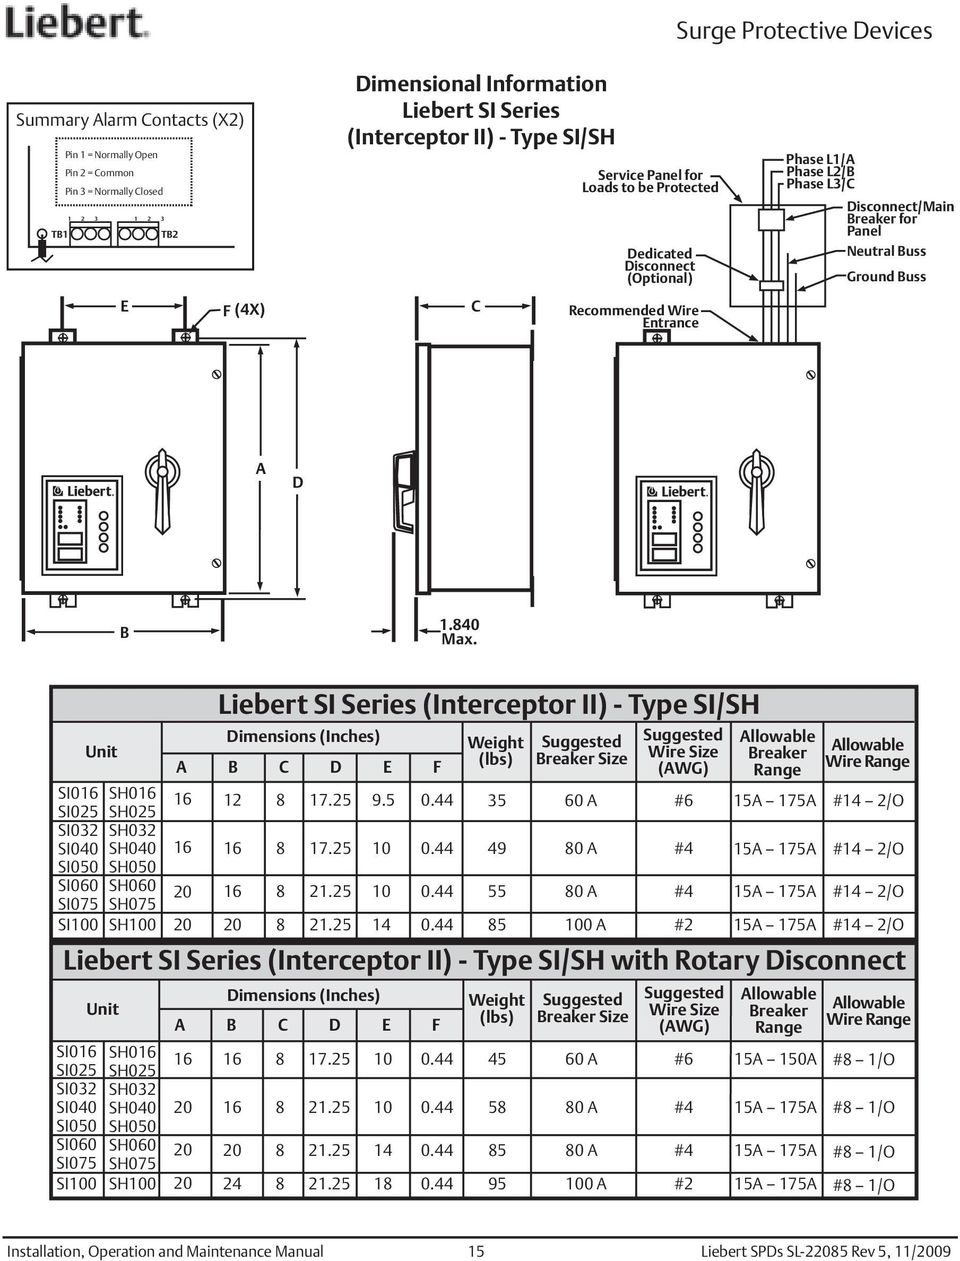 Unit SI016 SI025 SI032 SI040 SI050 SI060 SI075 SI100 Liebert SI Series (Interceptor II) - Type SI/SH Dimensions (Inches) D E F 16 12 8 17.25 9.5 0.